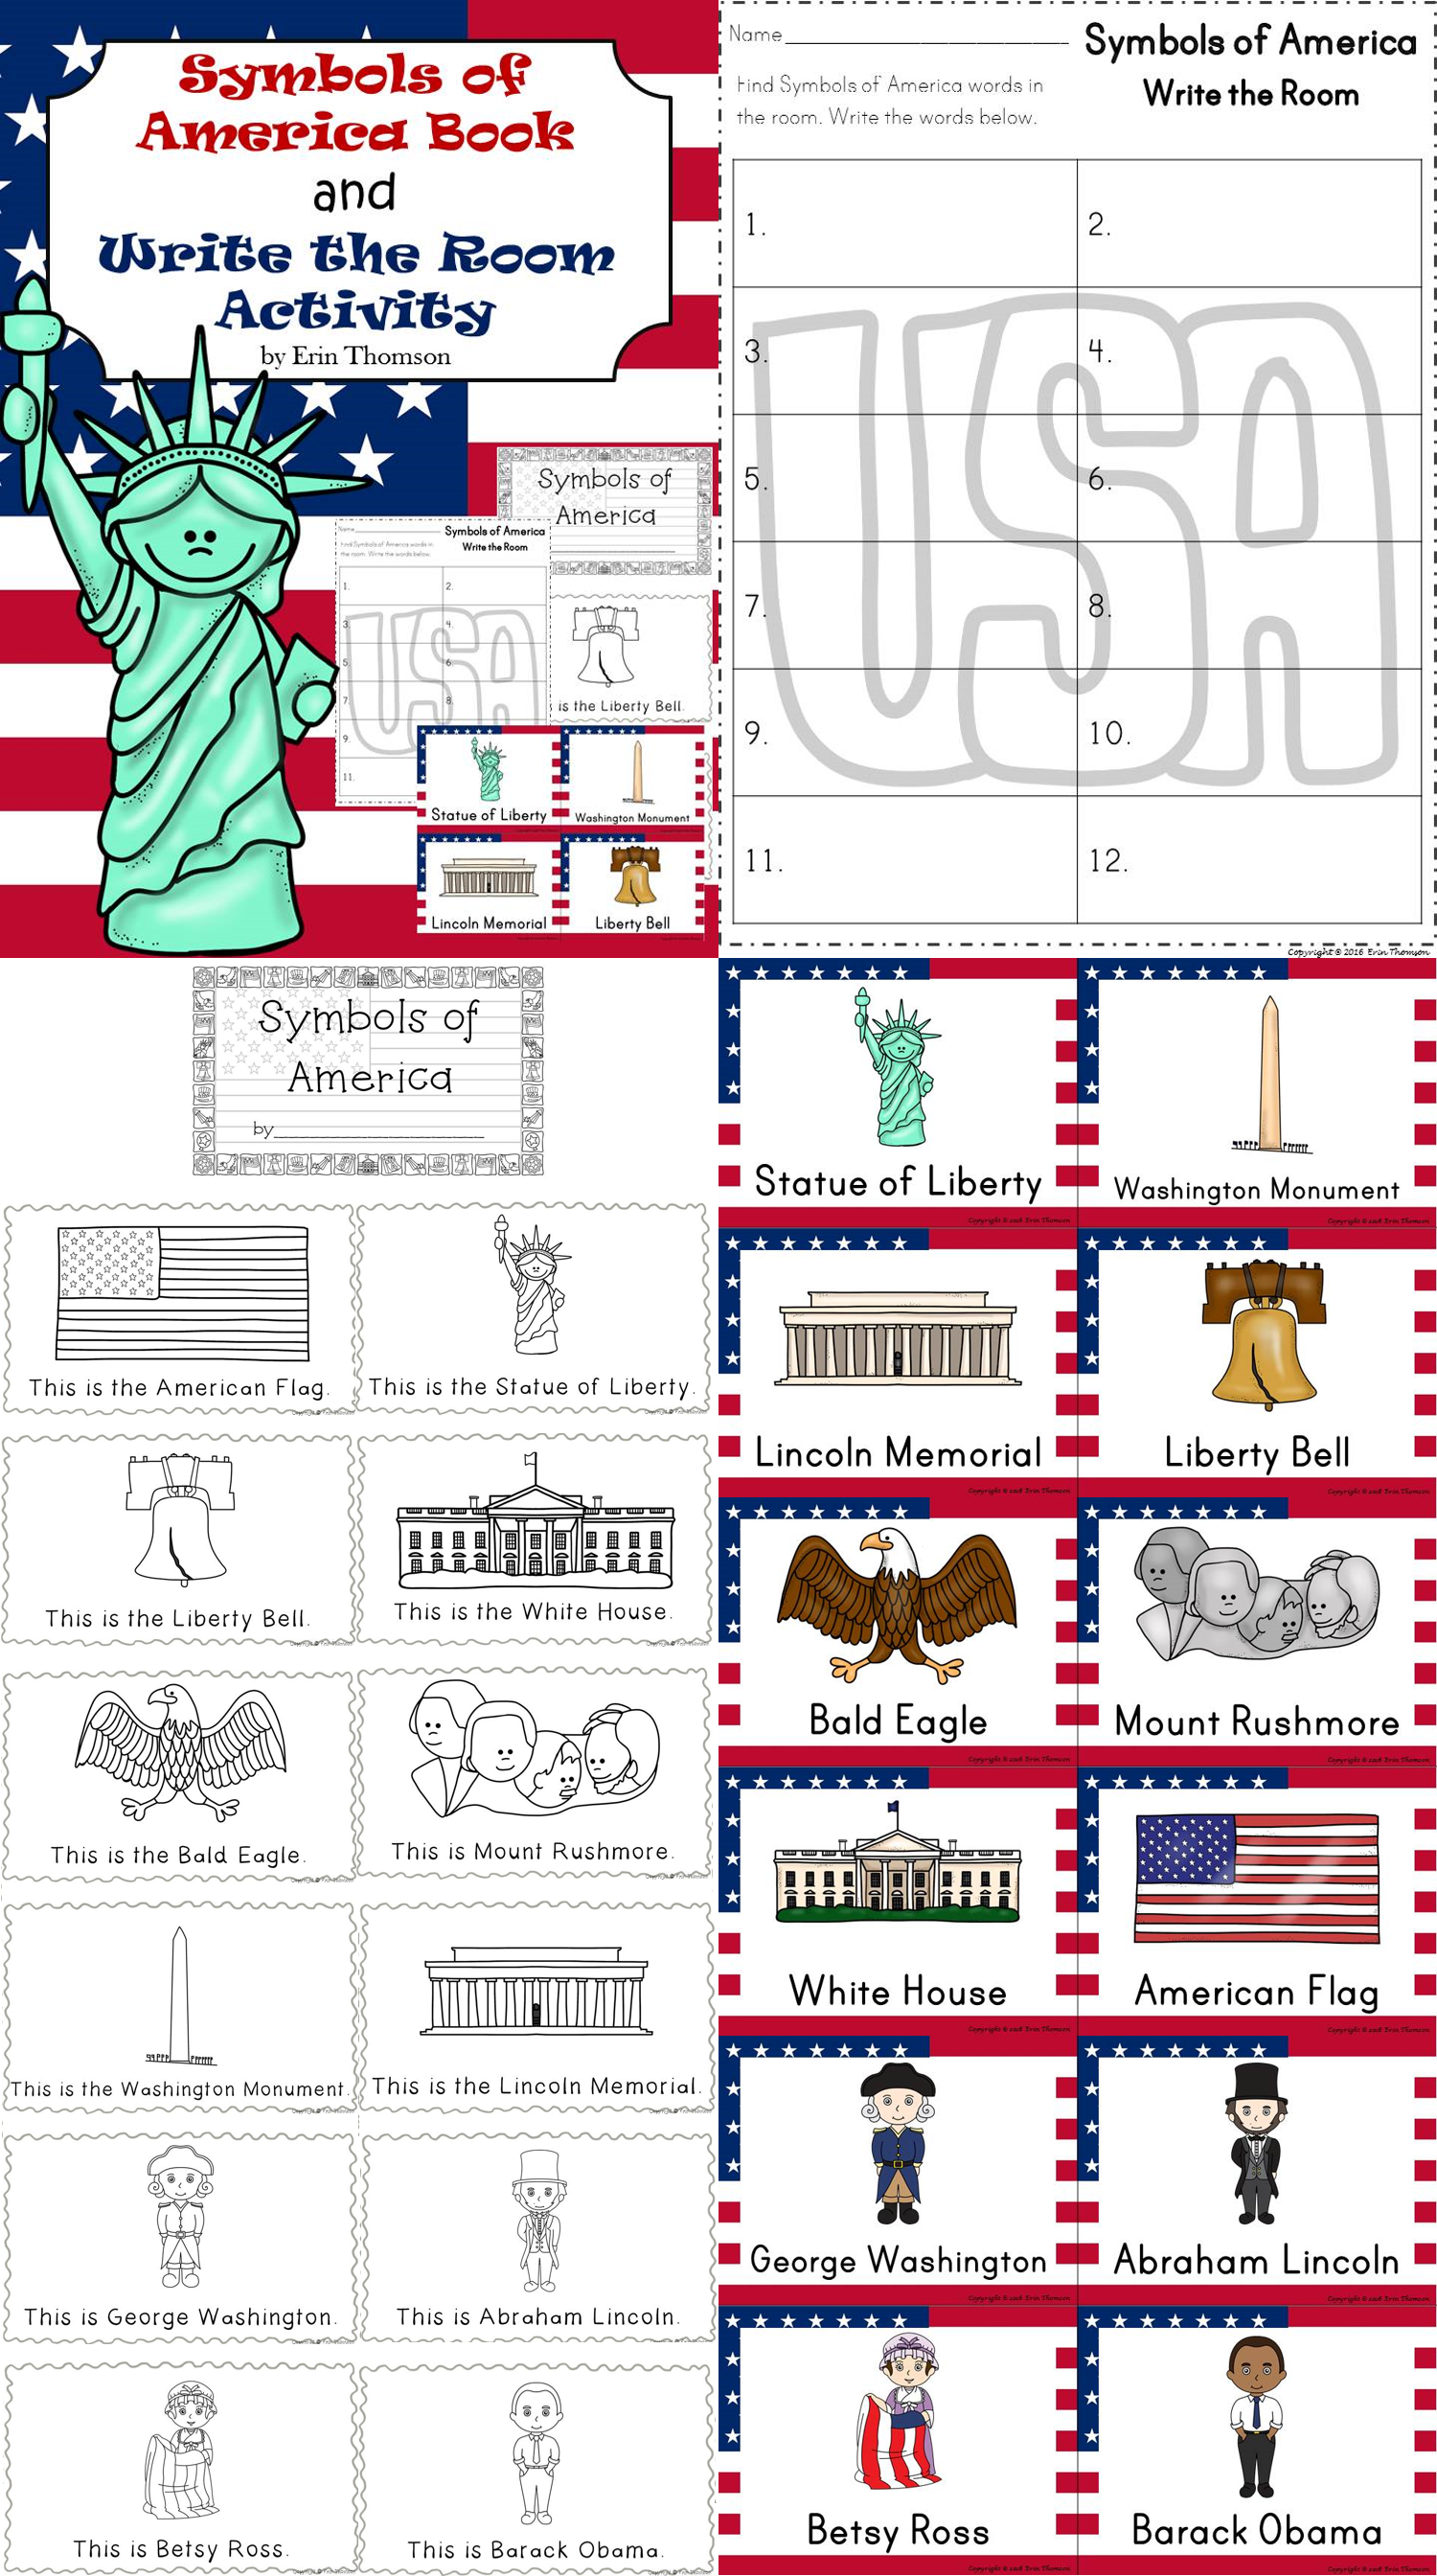 Symbols Of America Book And Write The Room Activity